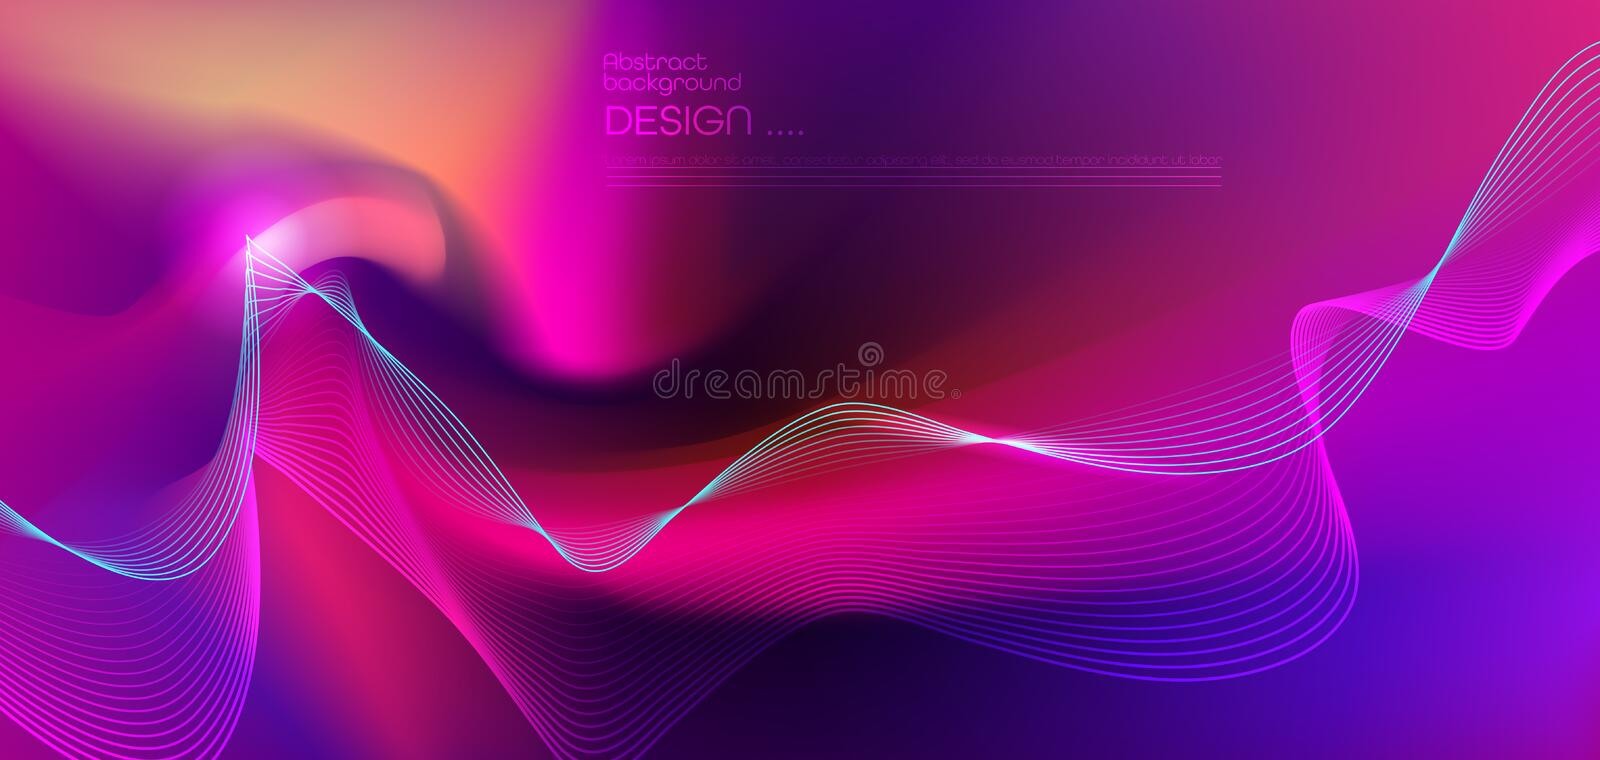 Illustration abstract glowing, neon light effect, strip line pattern on bright fluid gradient background. royalty free illustration